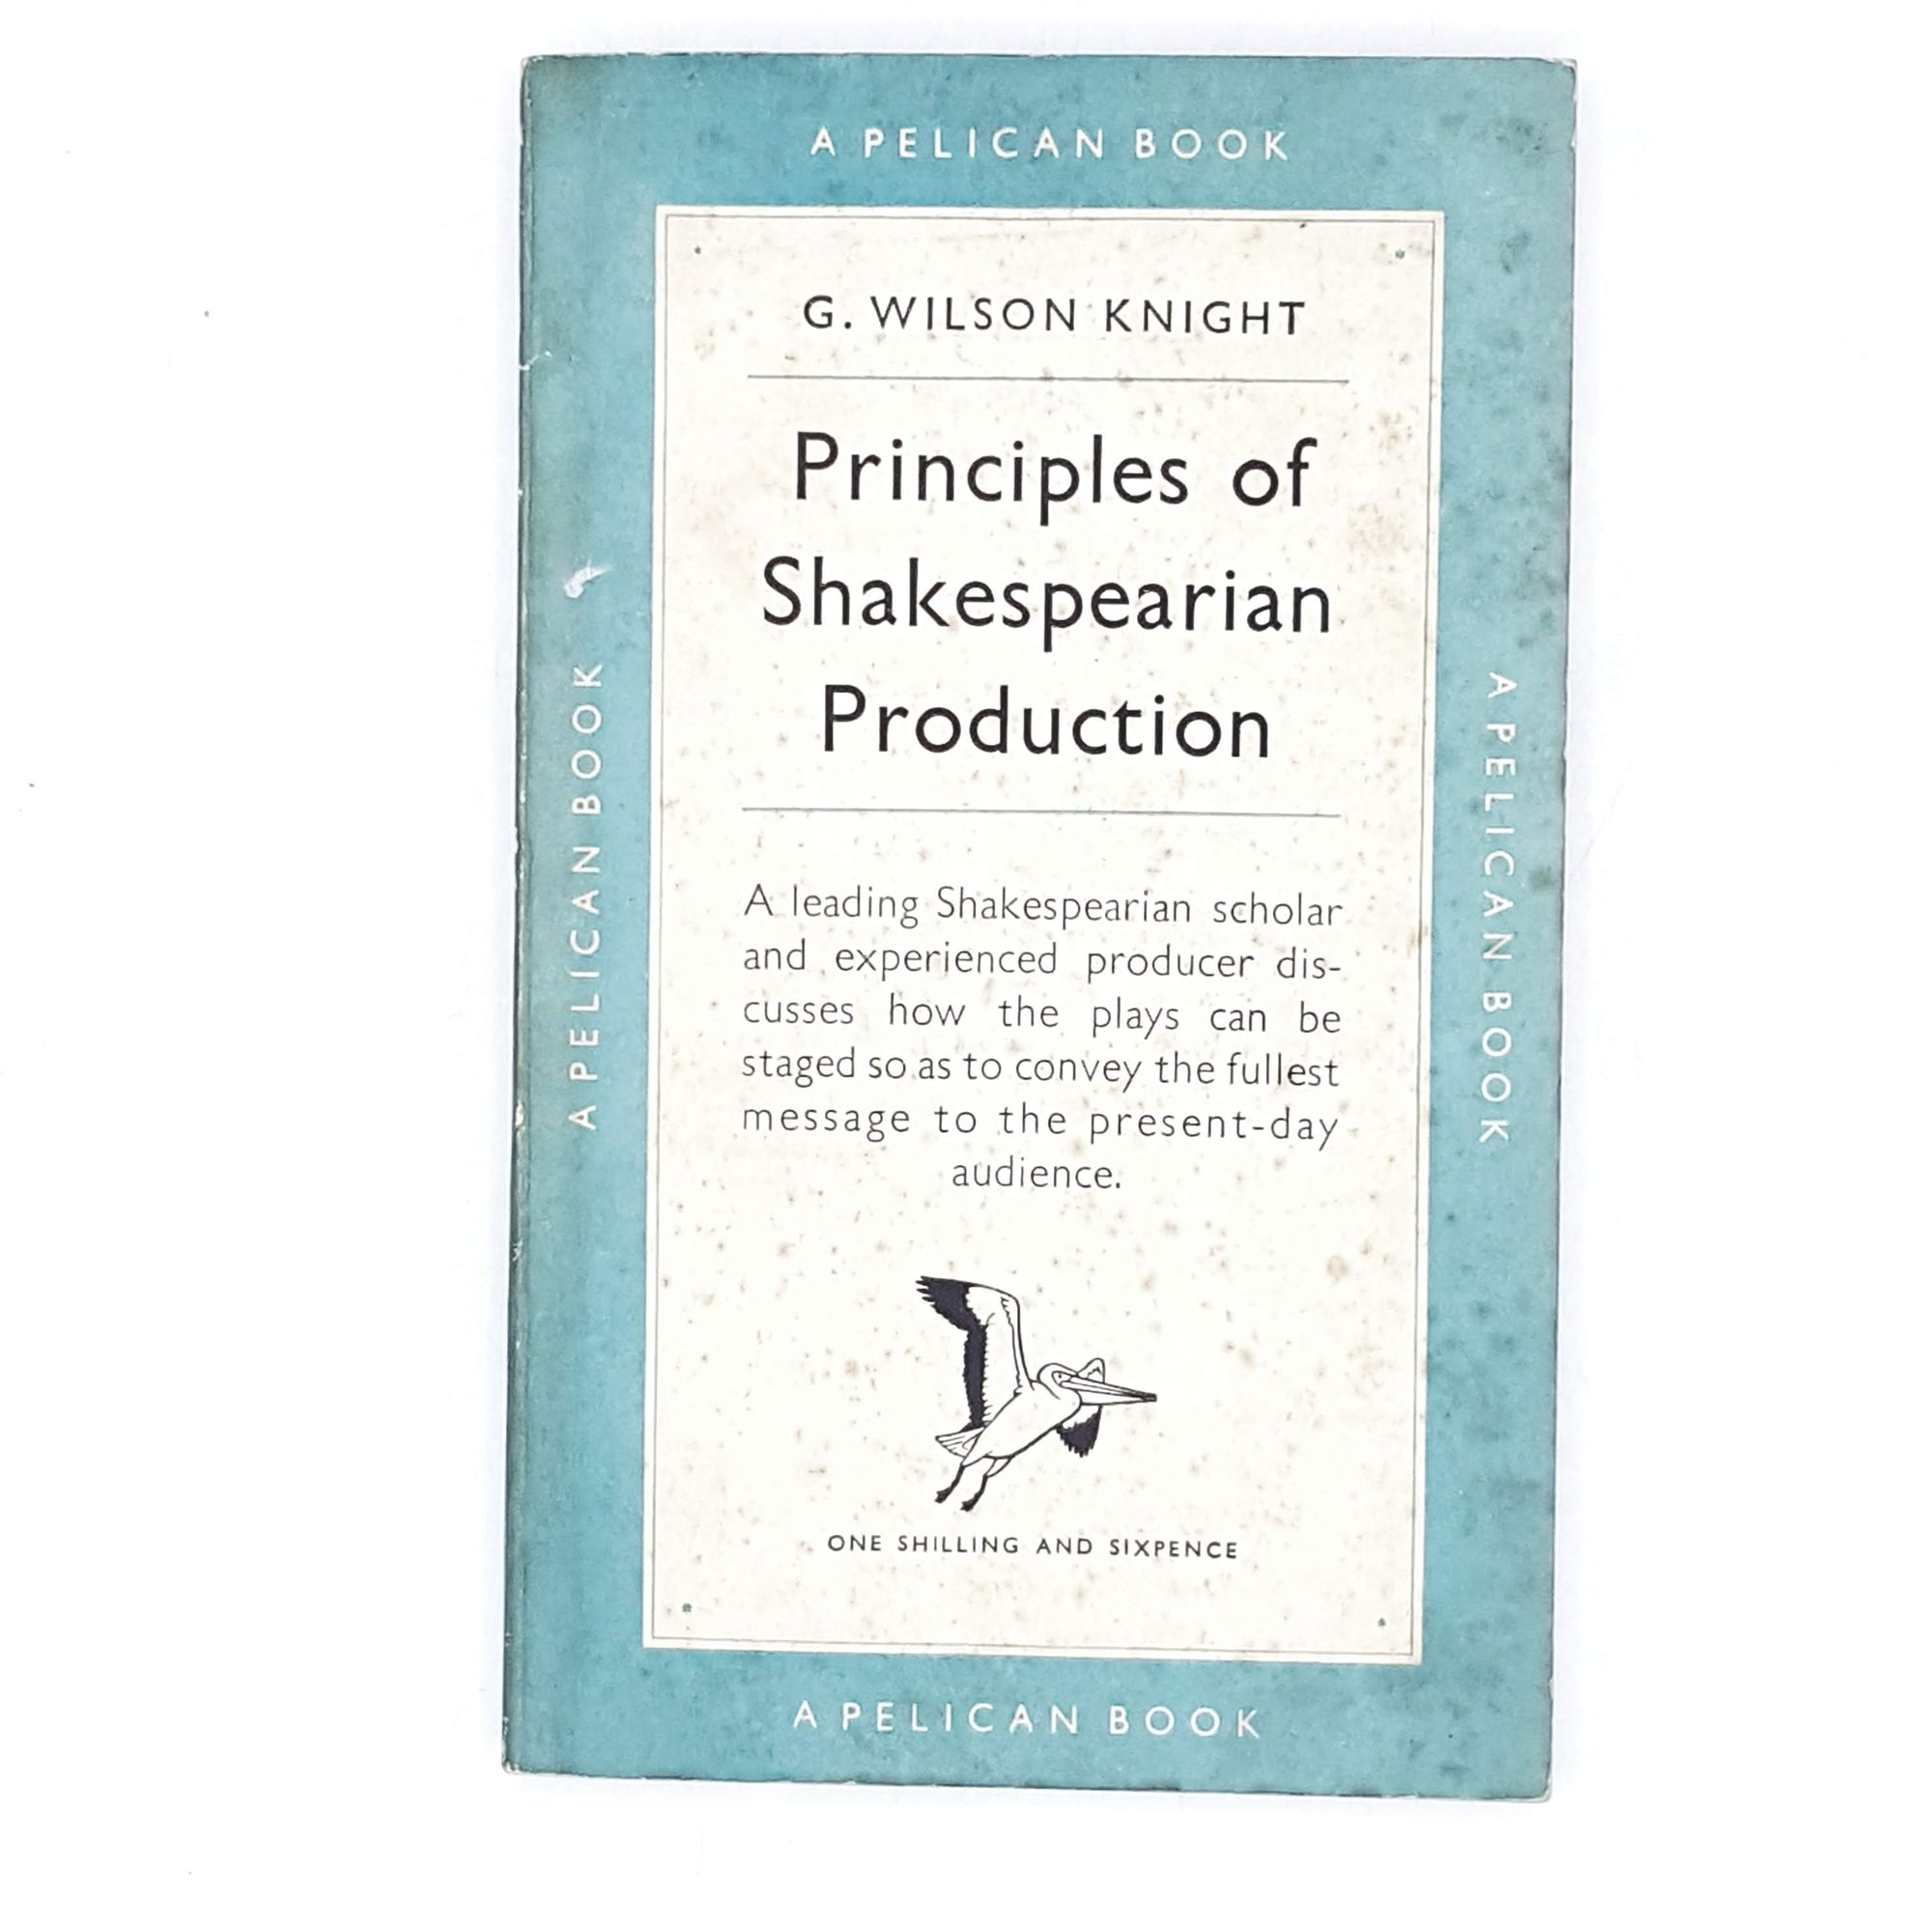 vintage-pelican-principles-of-shakespearian-production-by-g.-wilson-knight-1949-pale-blue-country-house-library